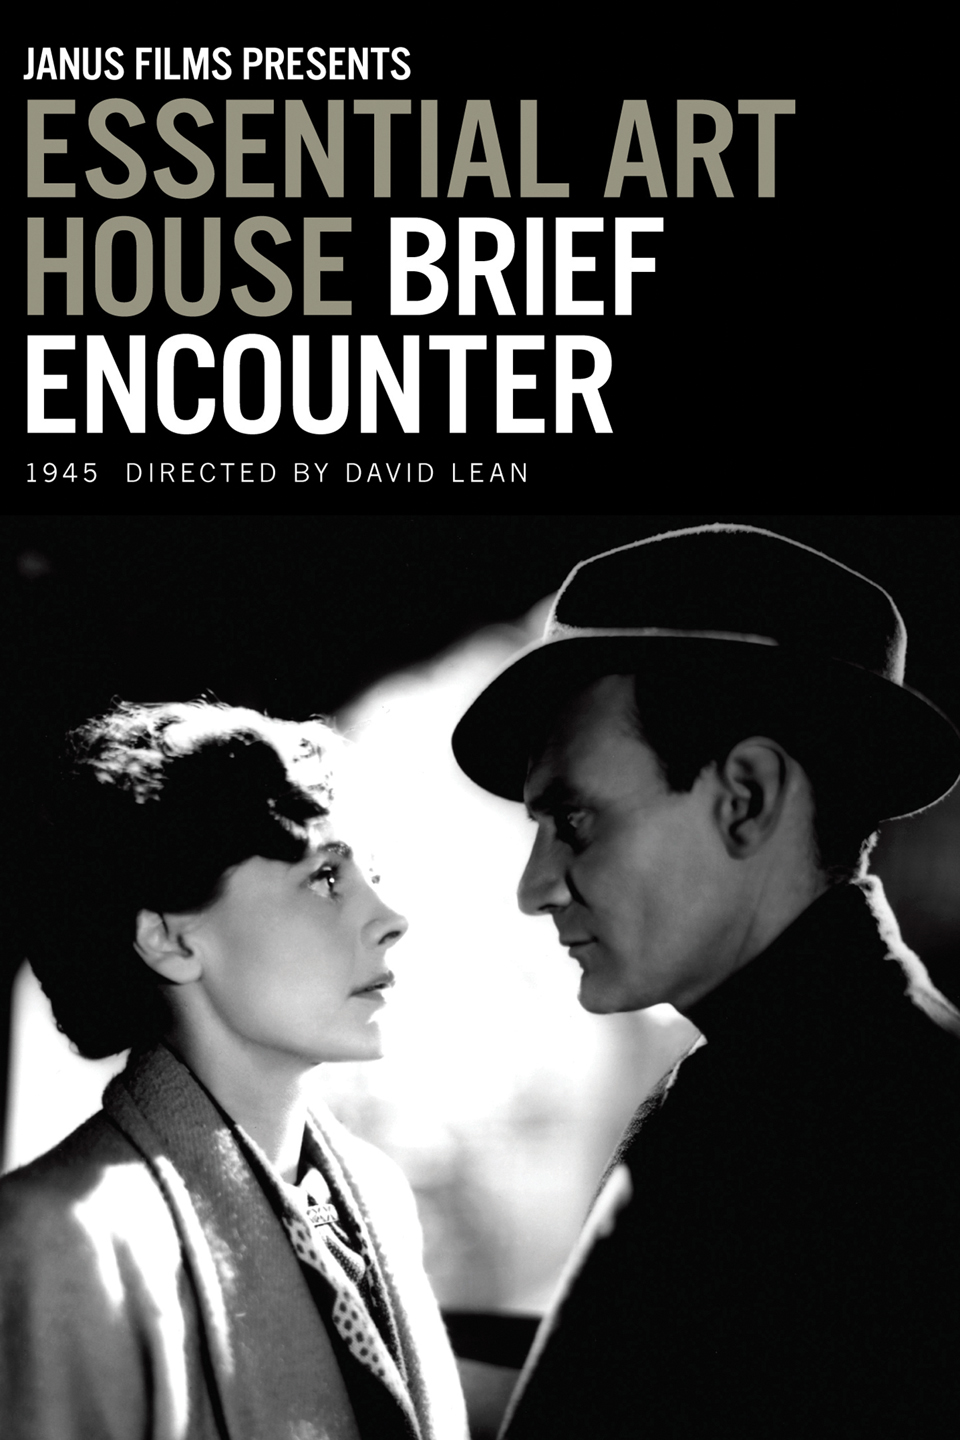 Brief Encounter wwwgstaticcomtvthumbdvdboxart2945p2945dv8